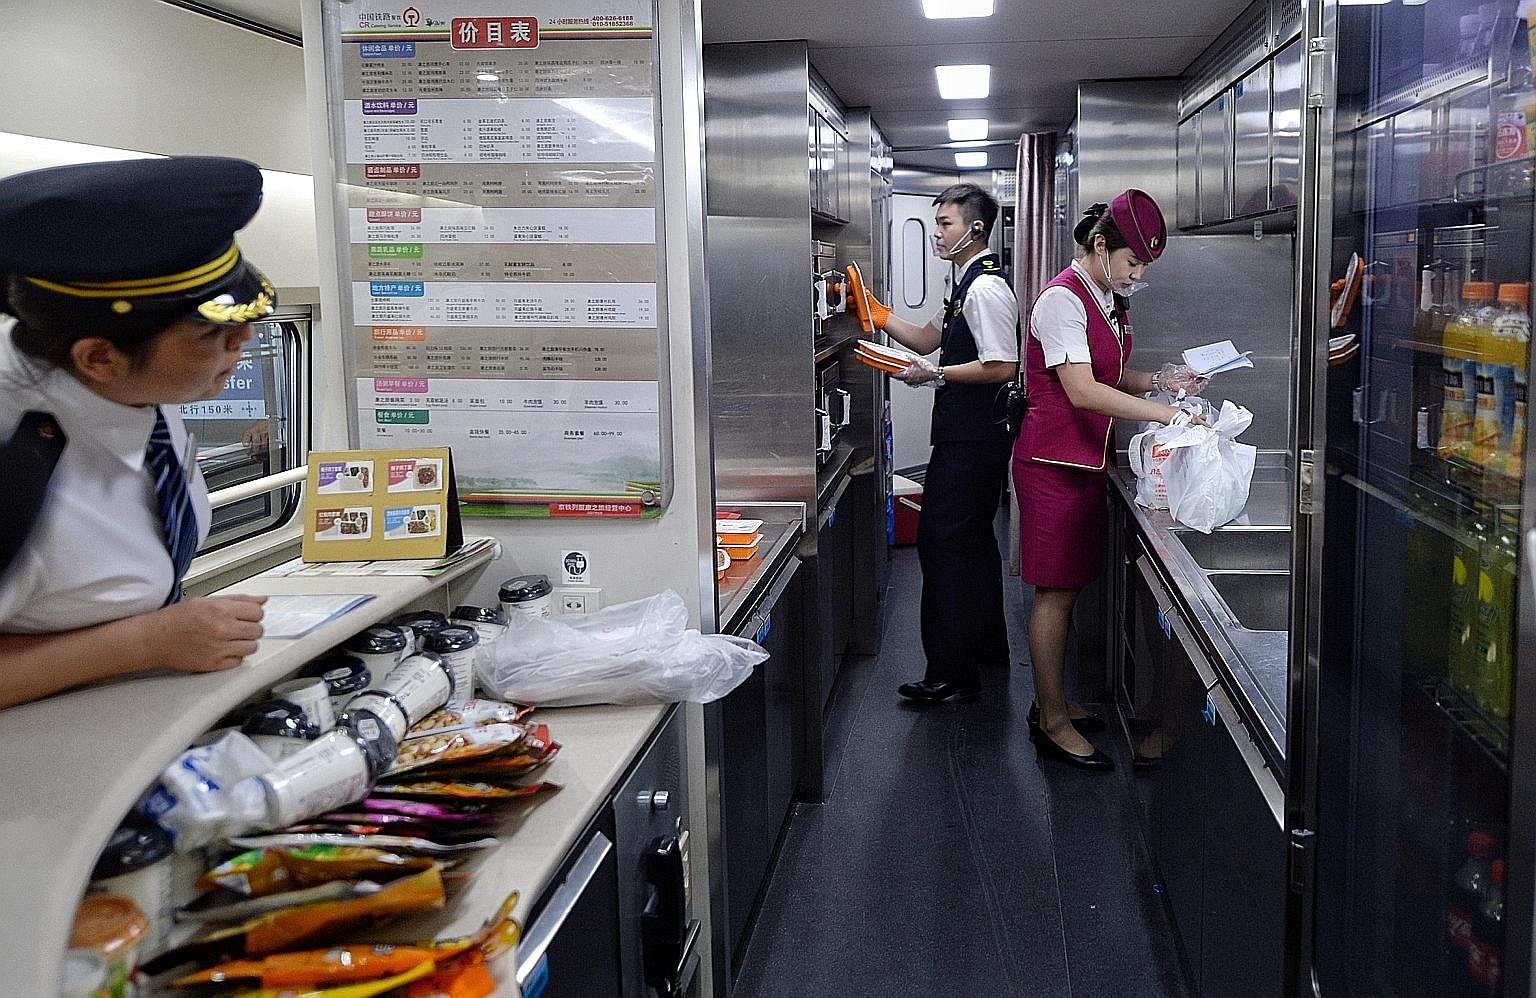 Meals being prepared for distribution at the Shijiazhuang high-speed rail station. Passengers can pre-order meals through the 12306.cn website and app and have their meals delivered to their seats. China's high-speed rail lines are mostly straight wi